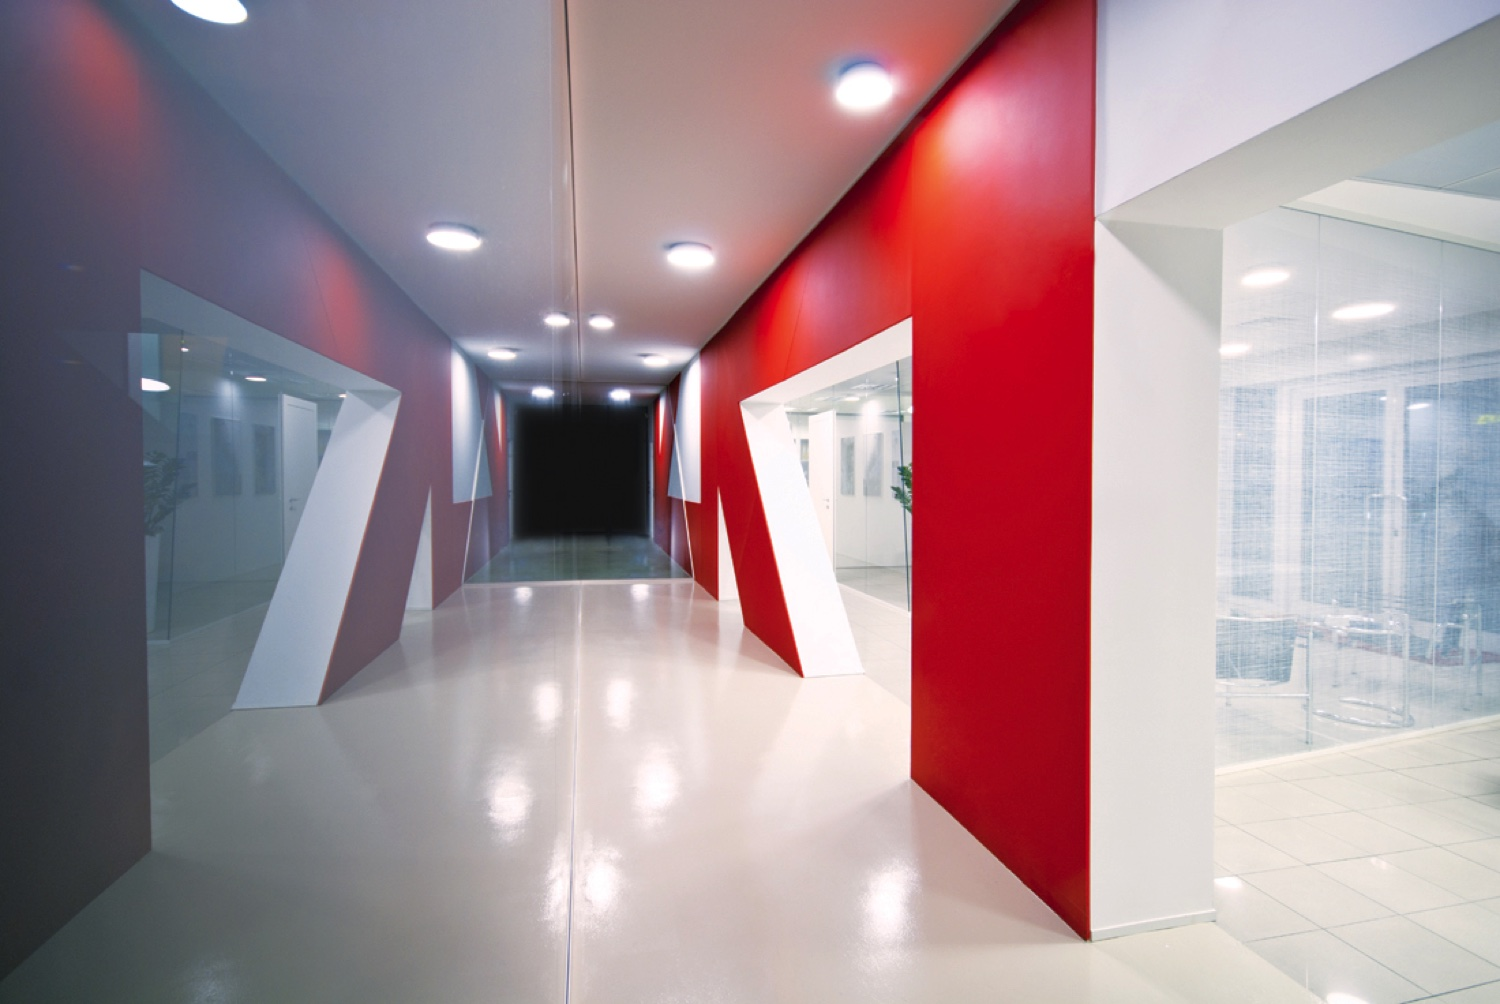 Partition Wall Glass Office Partitions Sliding Doors Aluminium Interior Demountable Wooden Walls